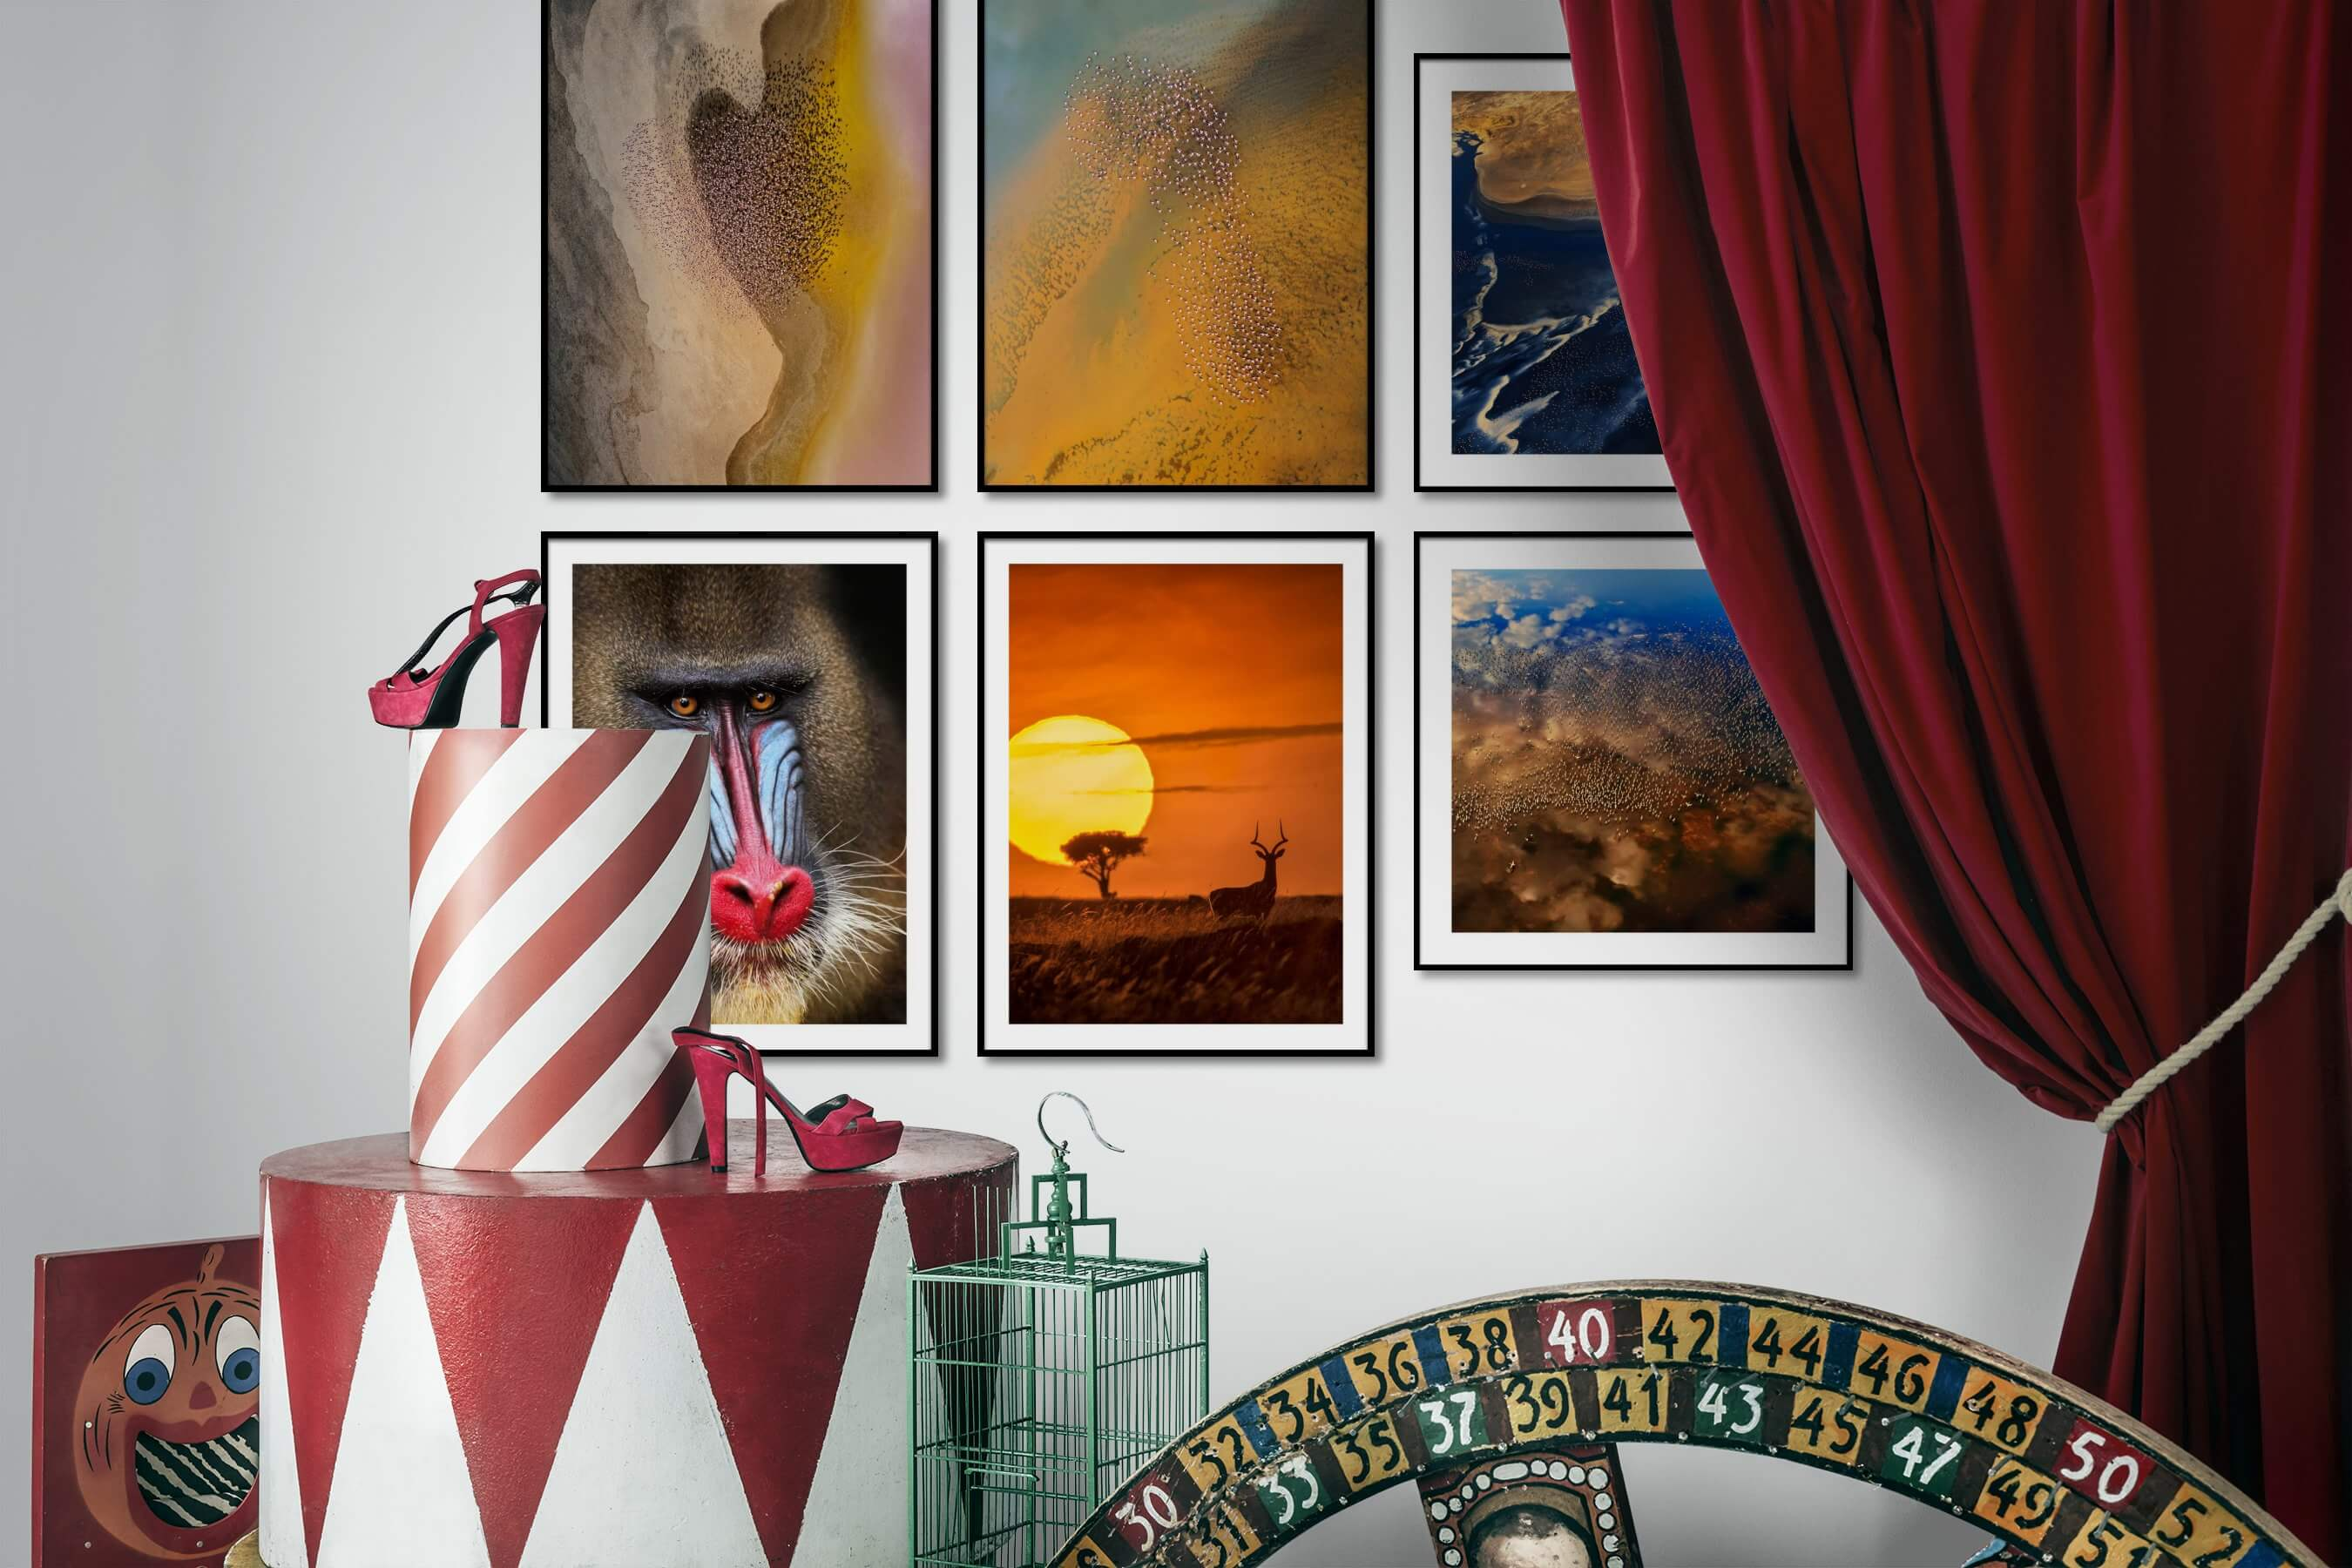 Gallery wall idea with six framed pictures arranged on a wall depicting For the Moderate, Nature, and Animals